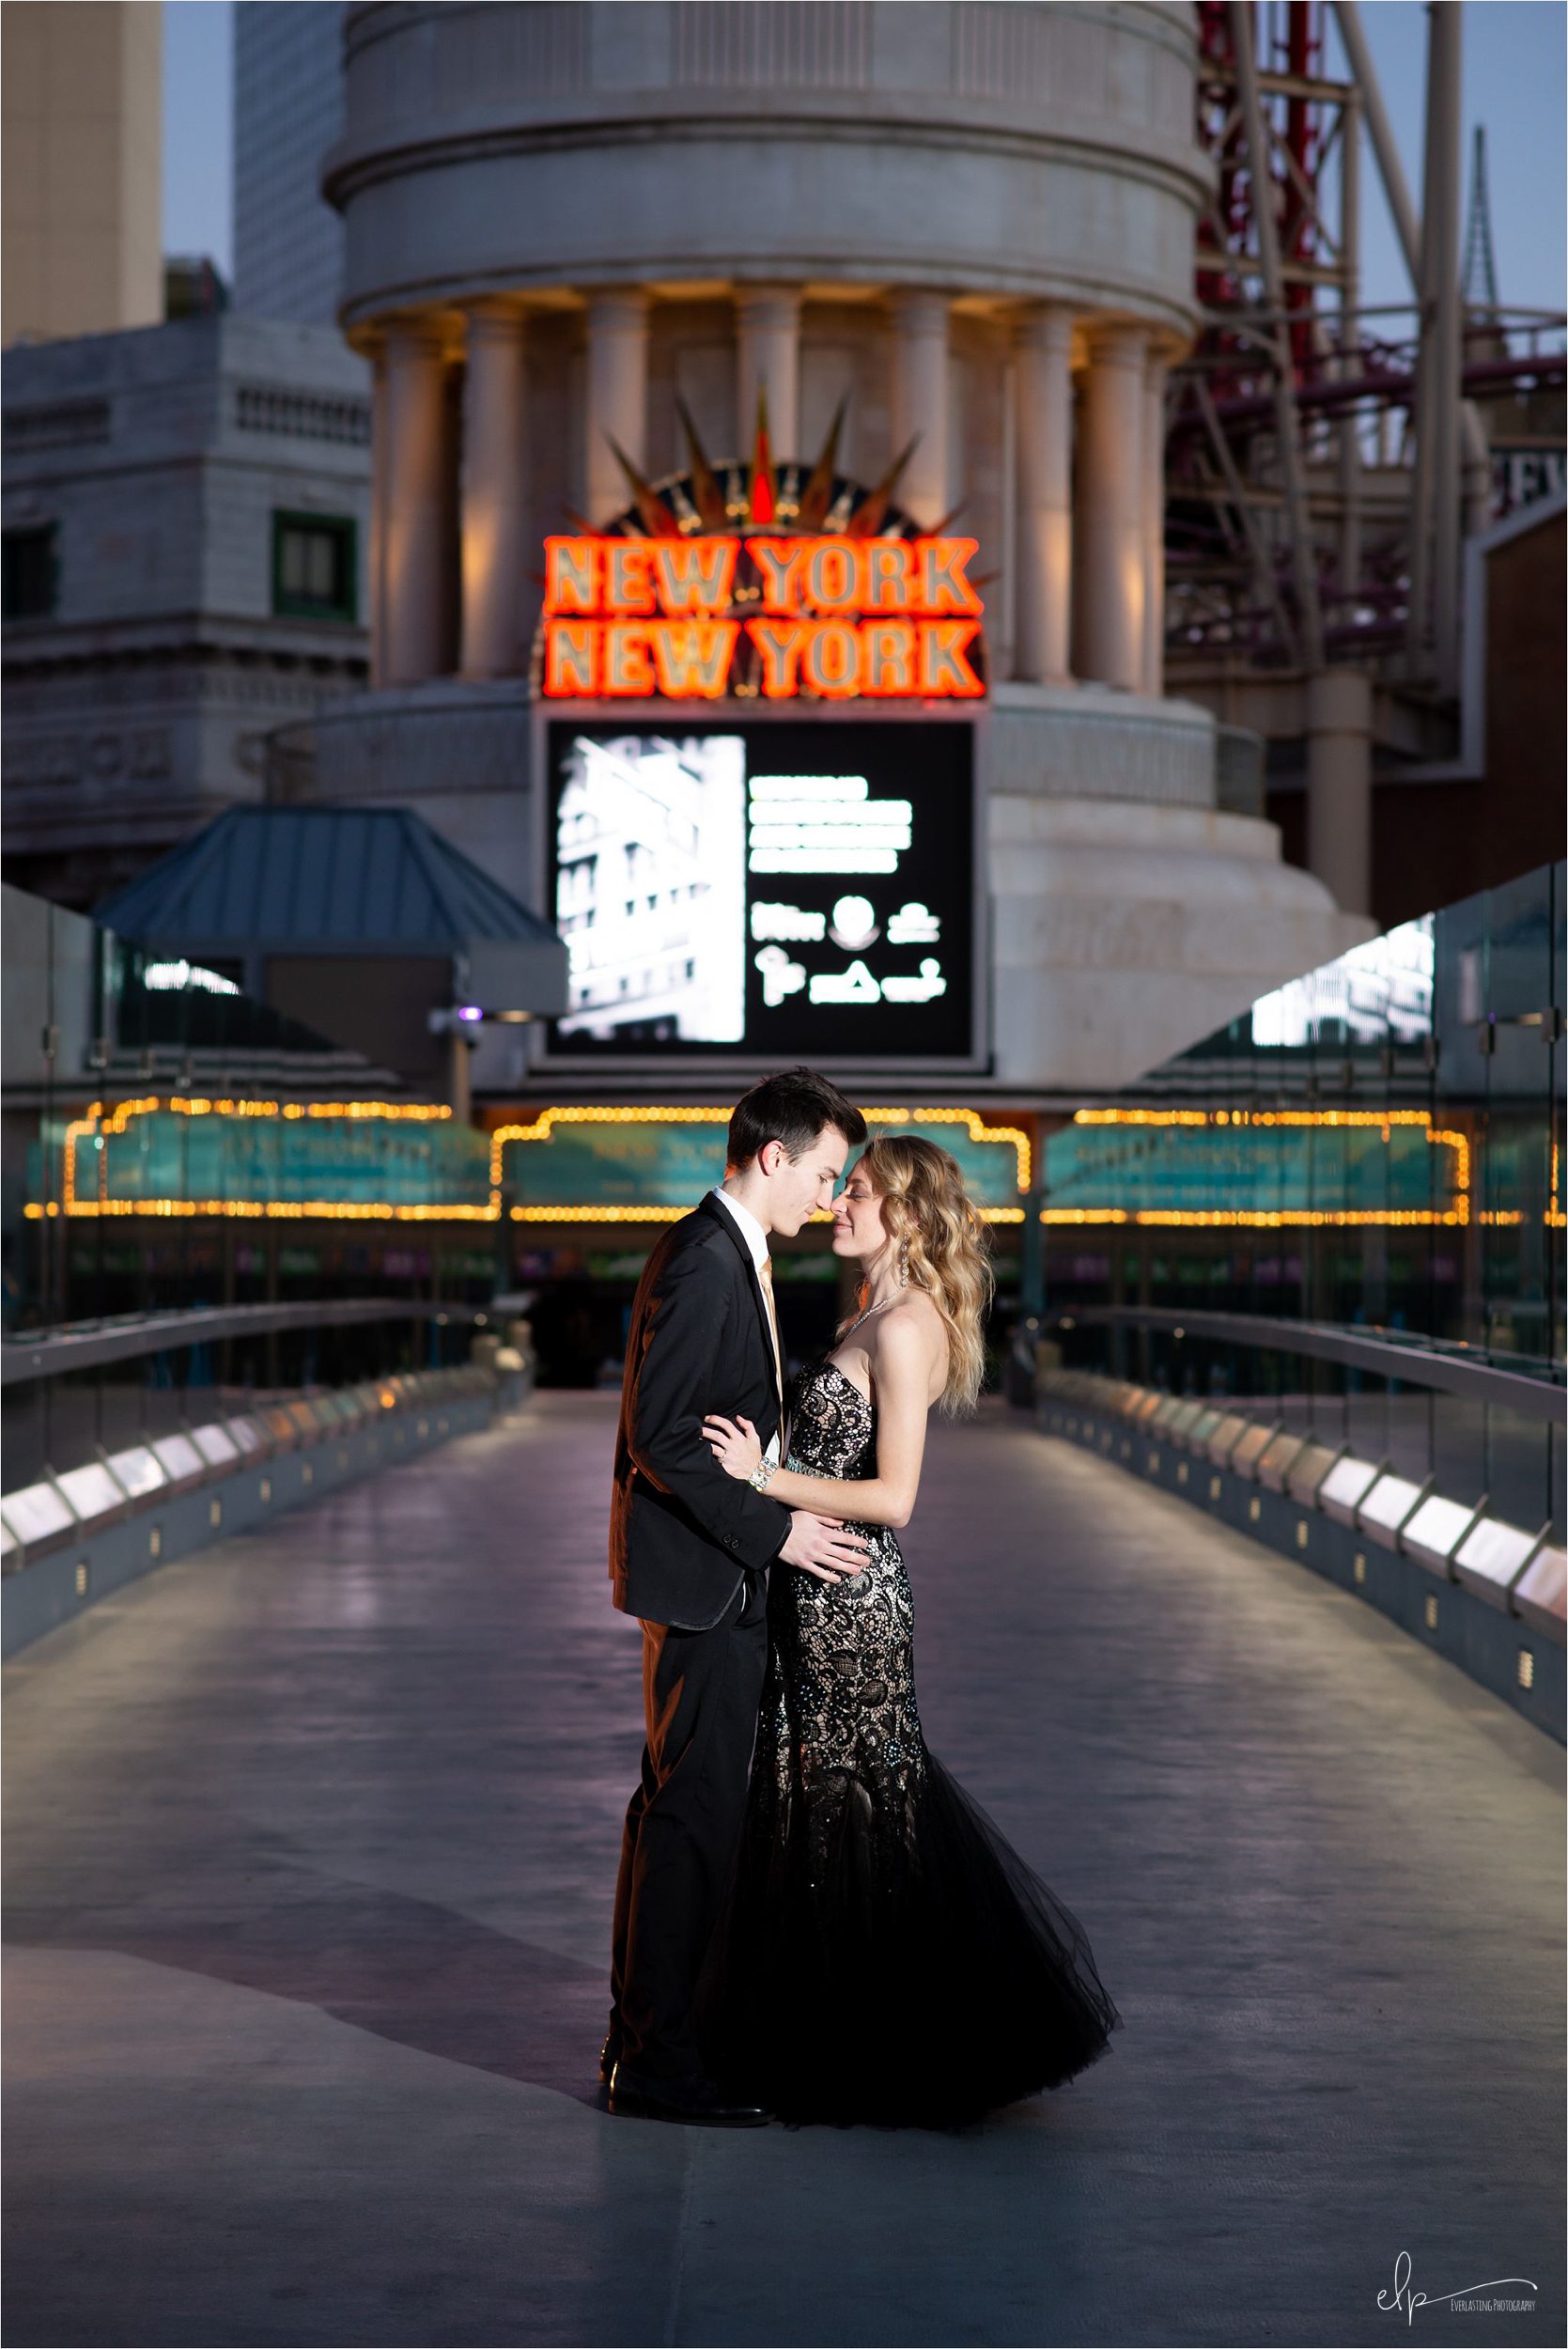 Engagement session at New York, New York, Las Vegas.